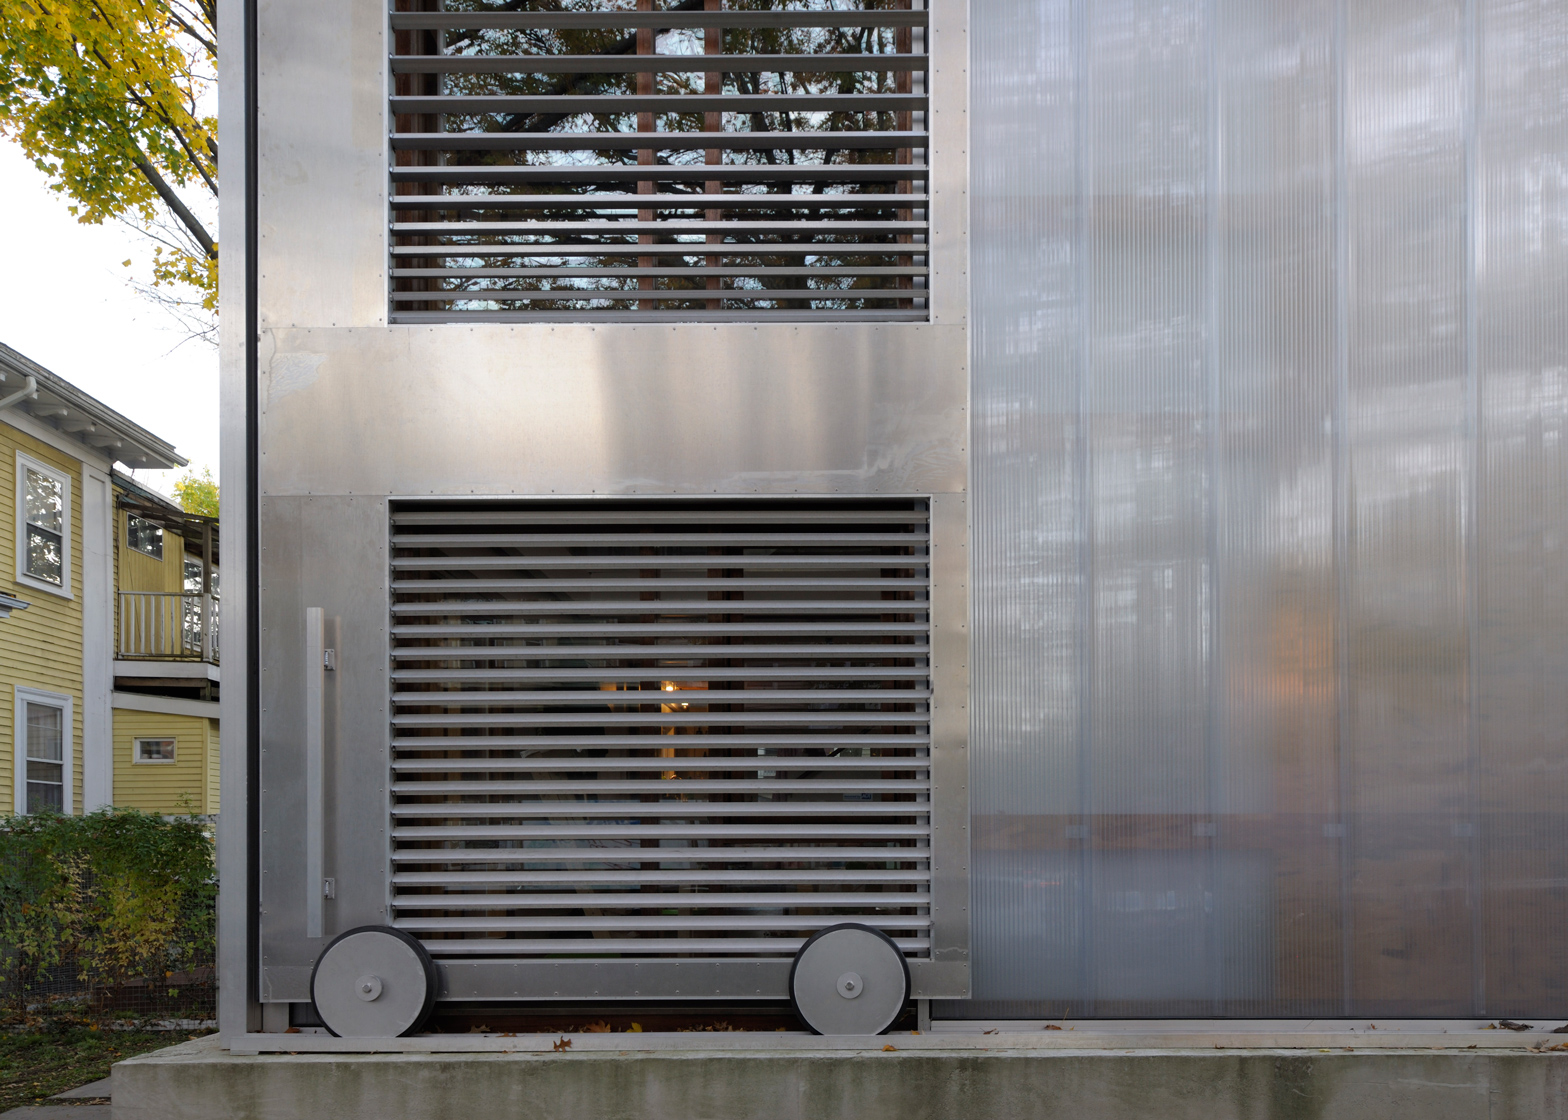 Polycarbonate House by Alessandro Armando and Manfredo di Robilant